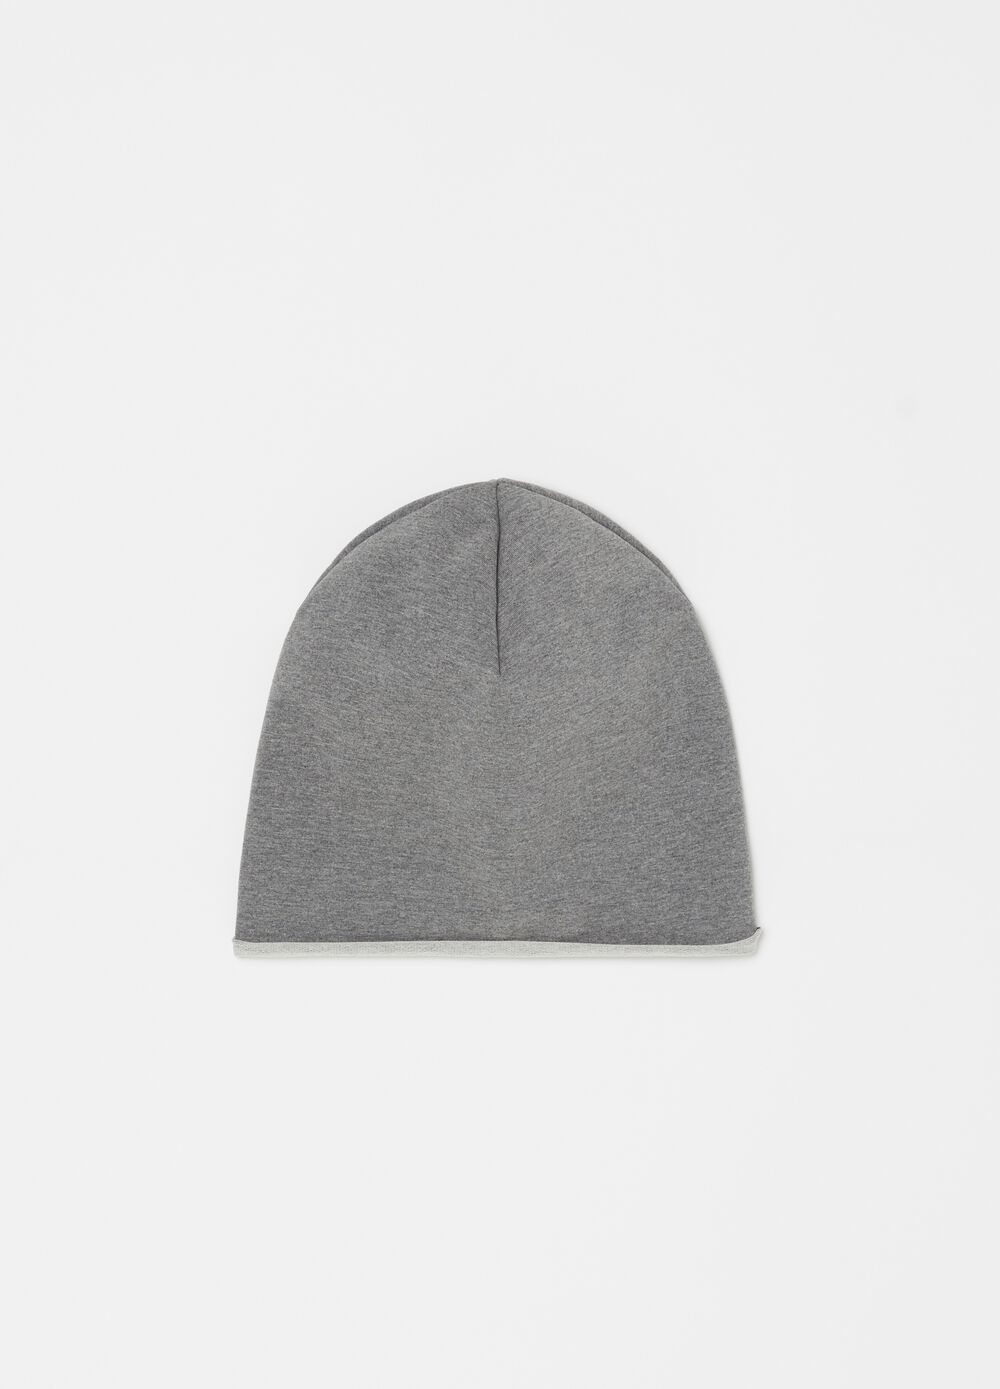 Stretch hat with soft edge